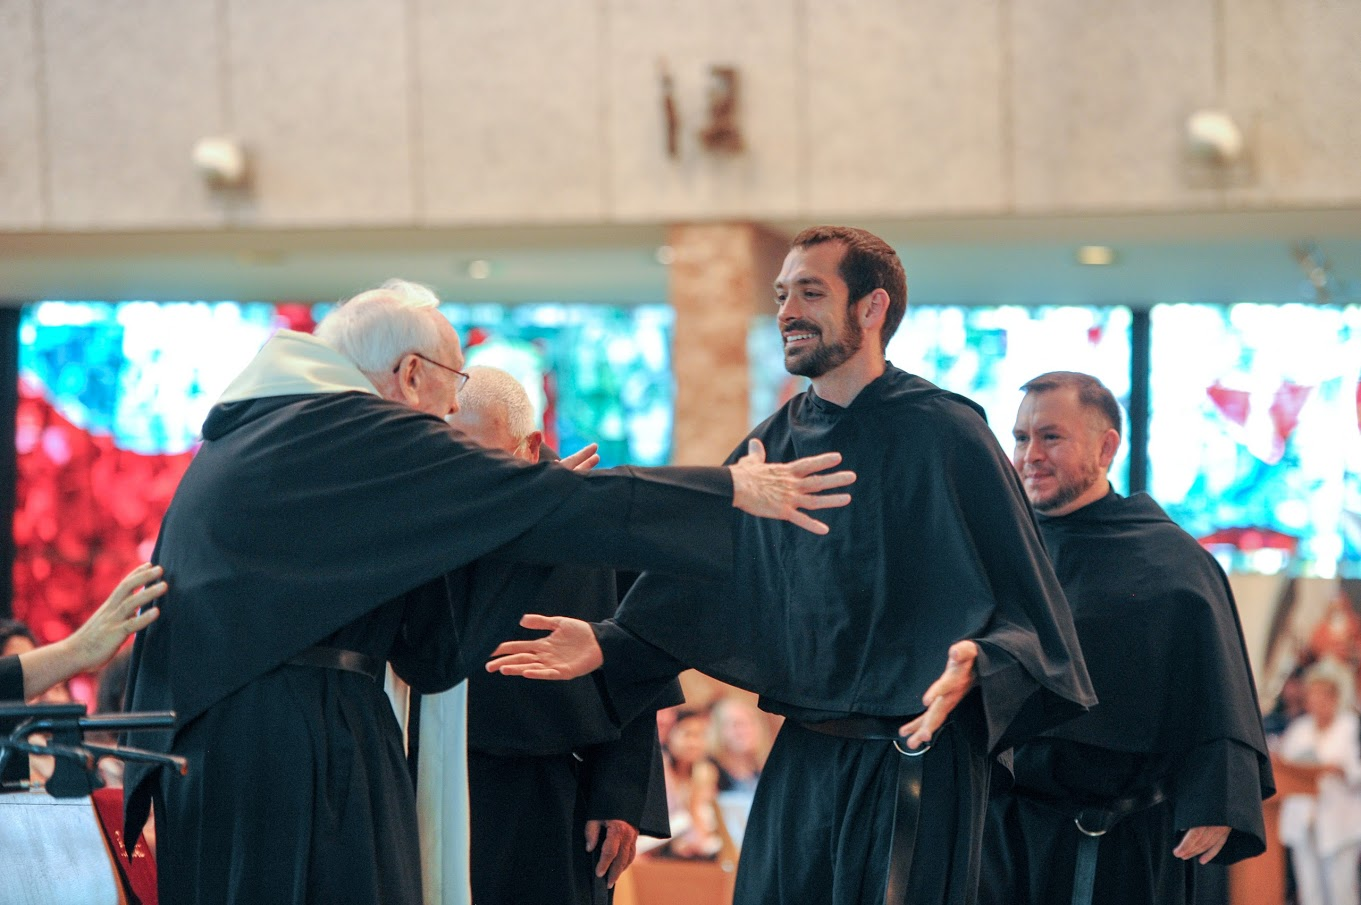 Br. Stephen Isley at his Solemn Profession of Vows on the Feast of St. Augustine 2016